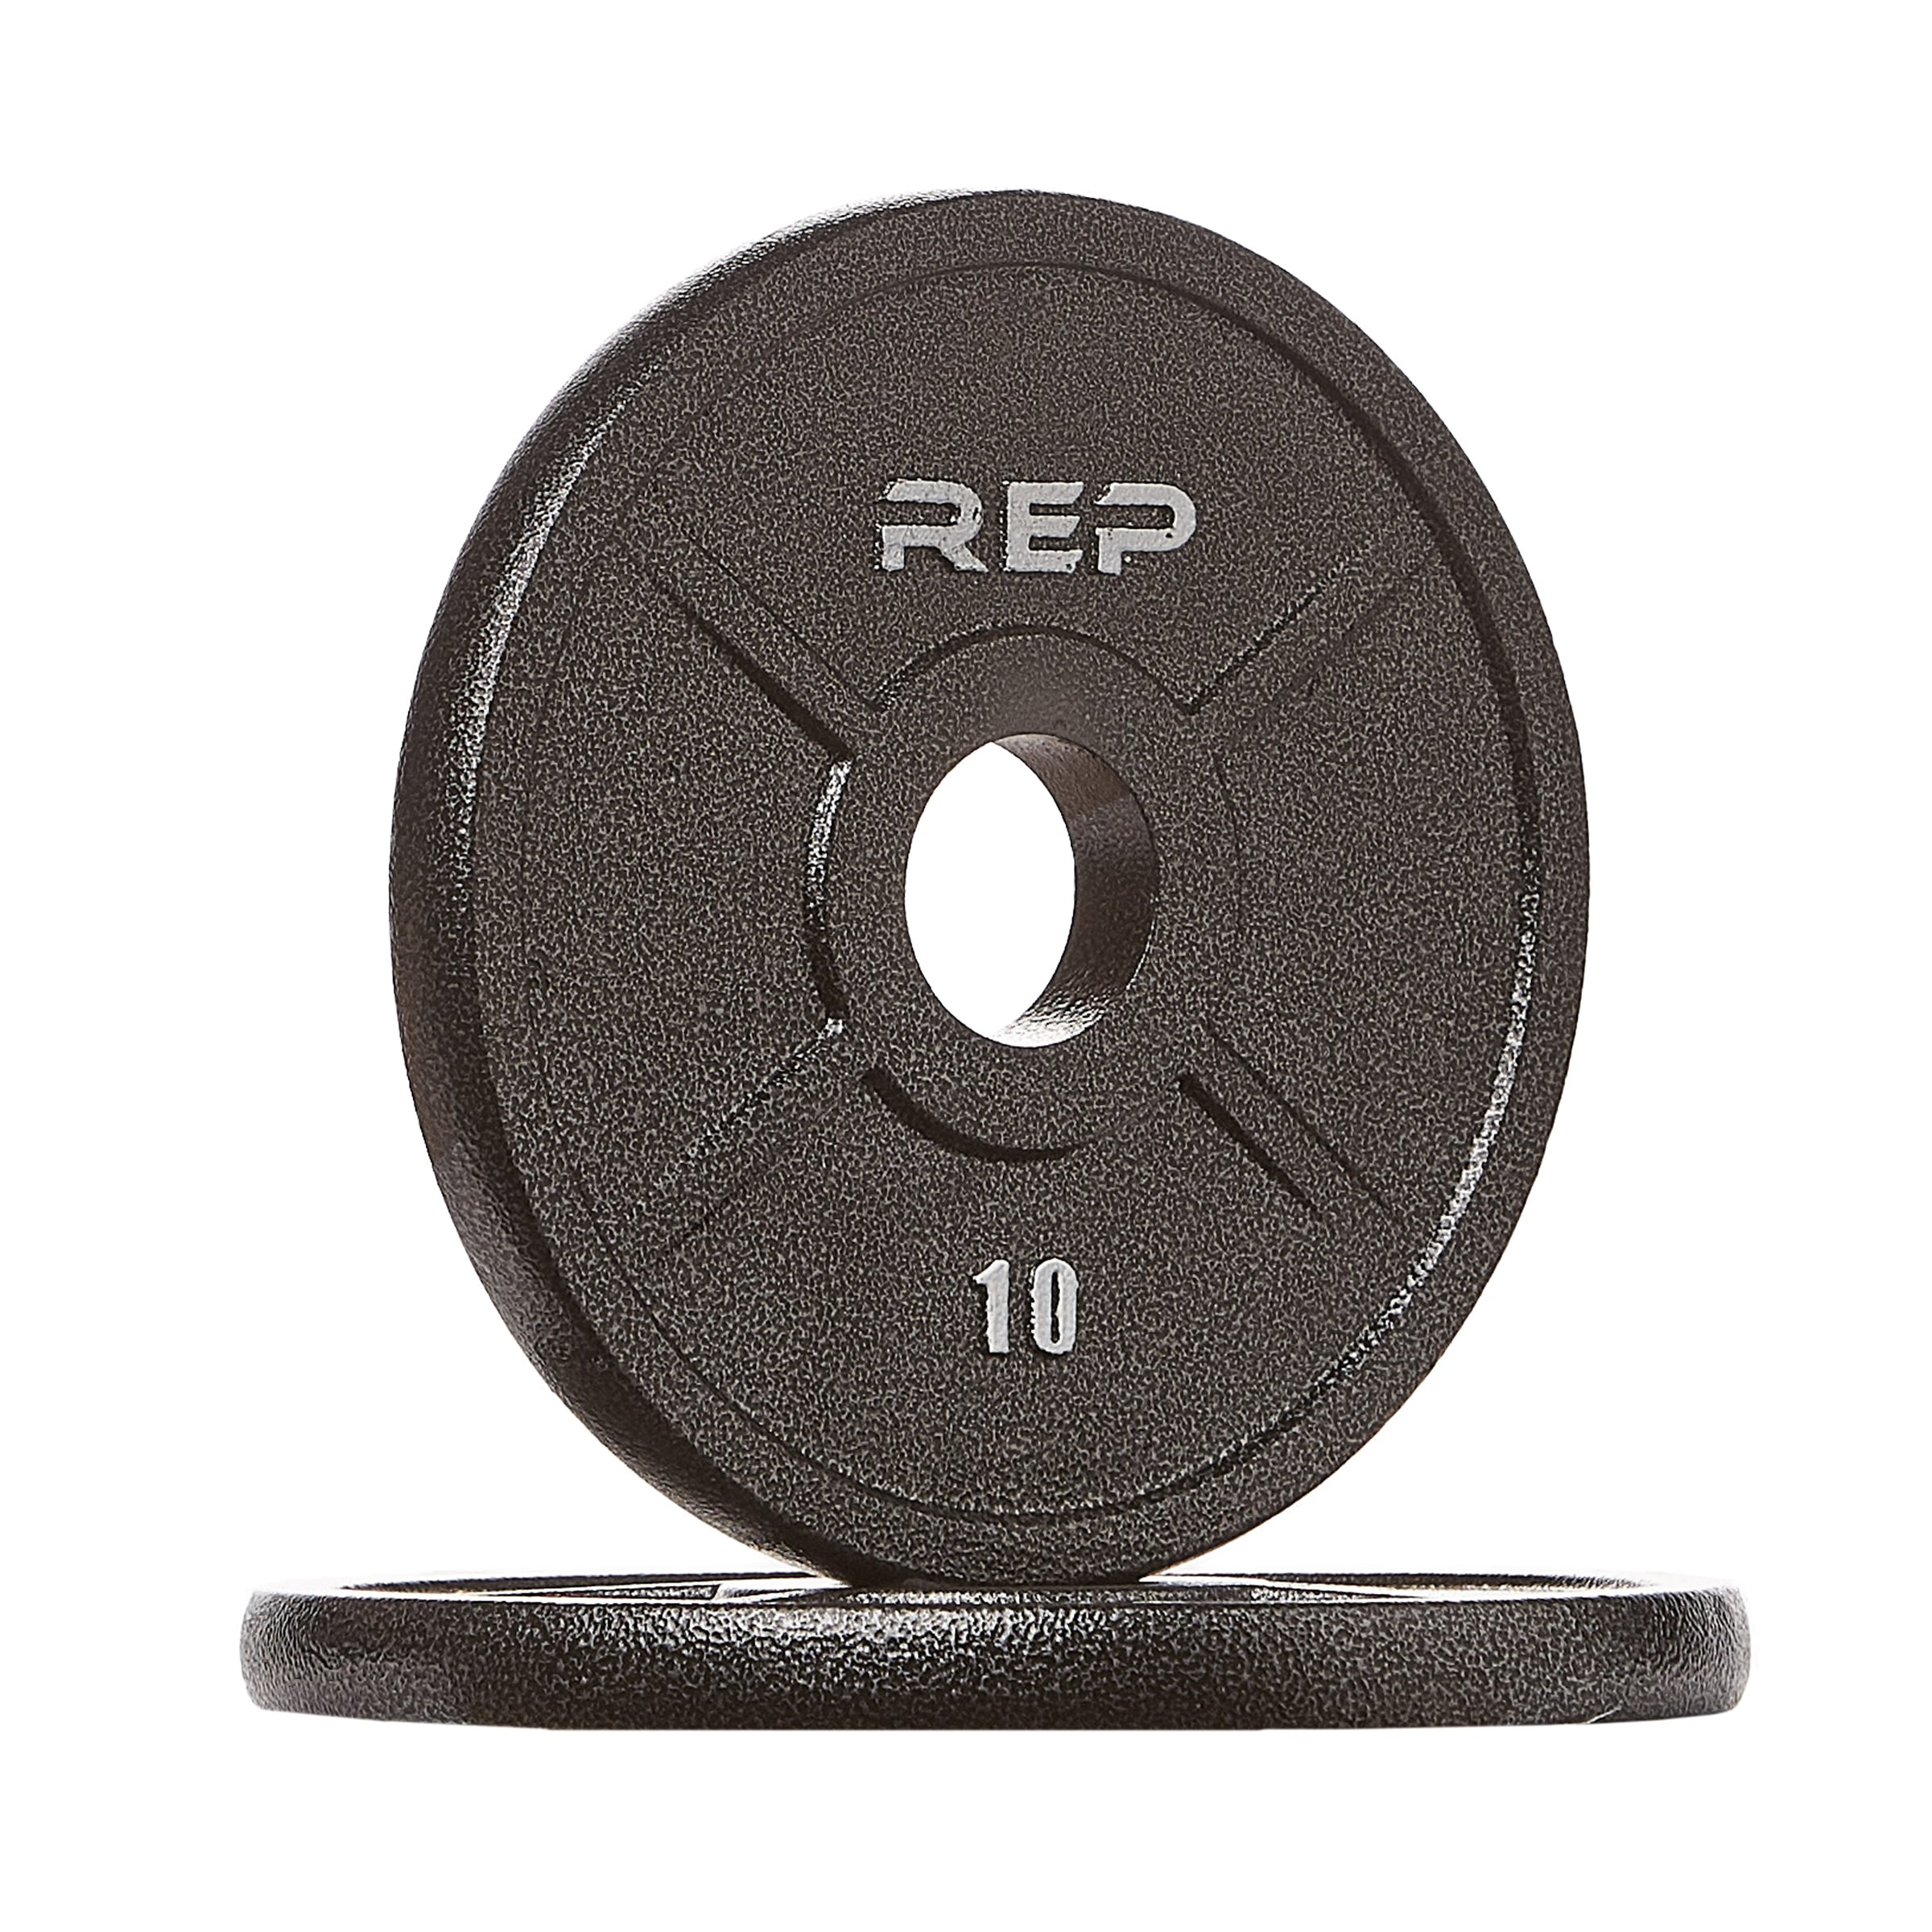 Rep Fitness Rep Black Equalizer Iron Olympic Plates, 10 lb Pair